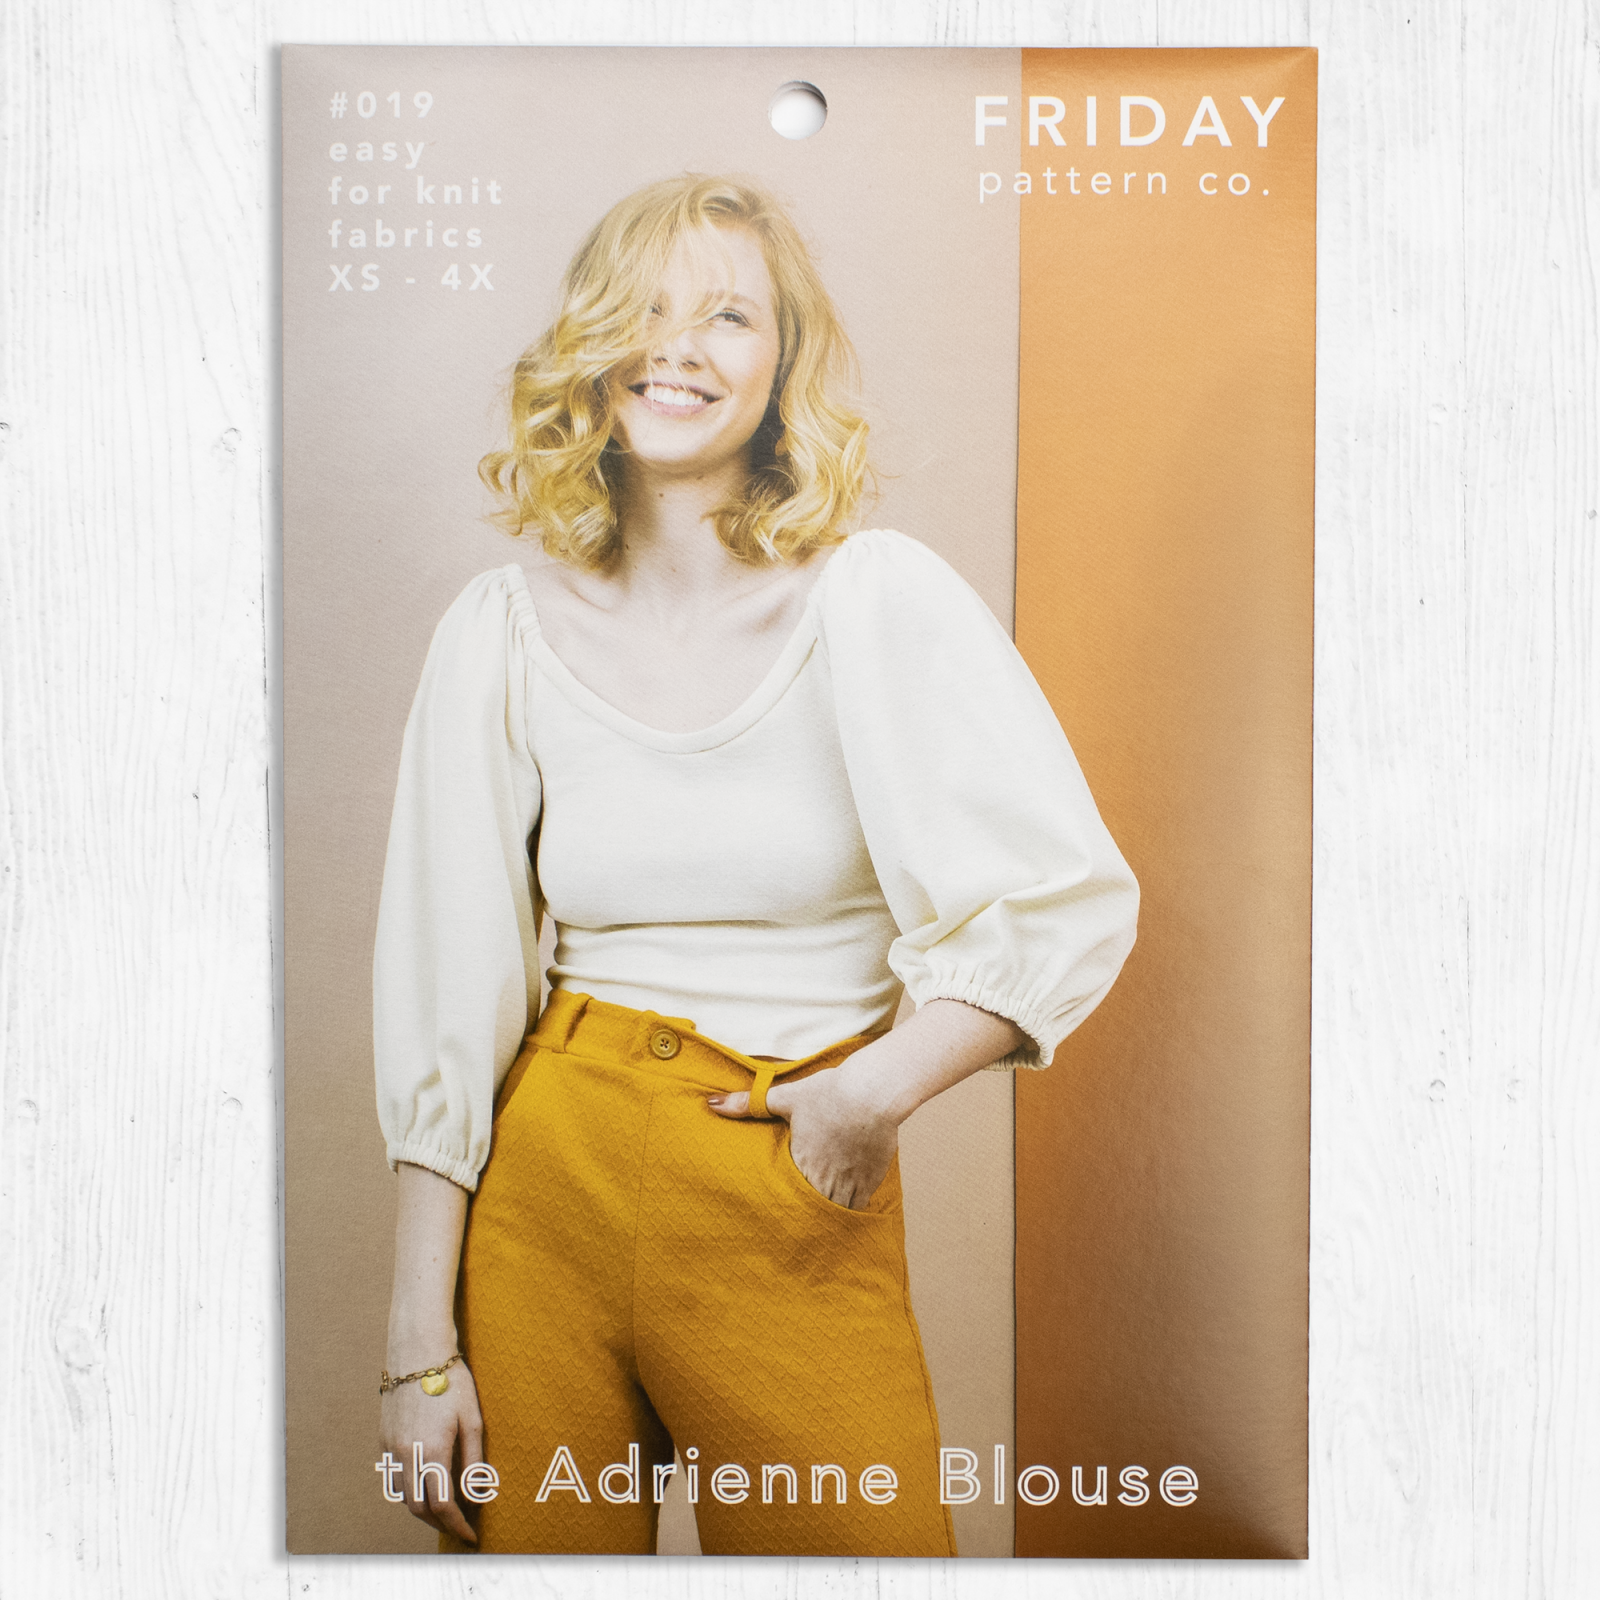 Friday Pattern Co. - The Adrienne Blouse